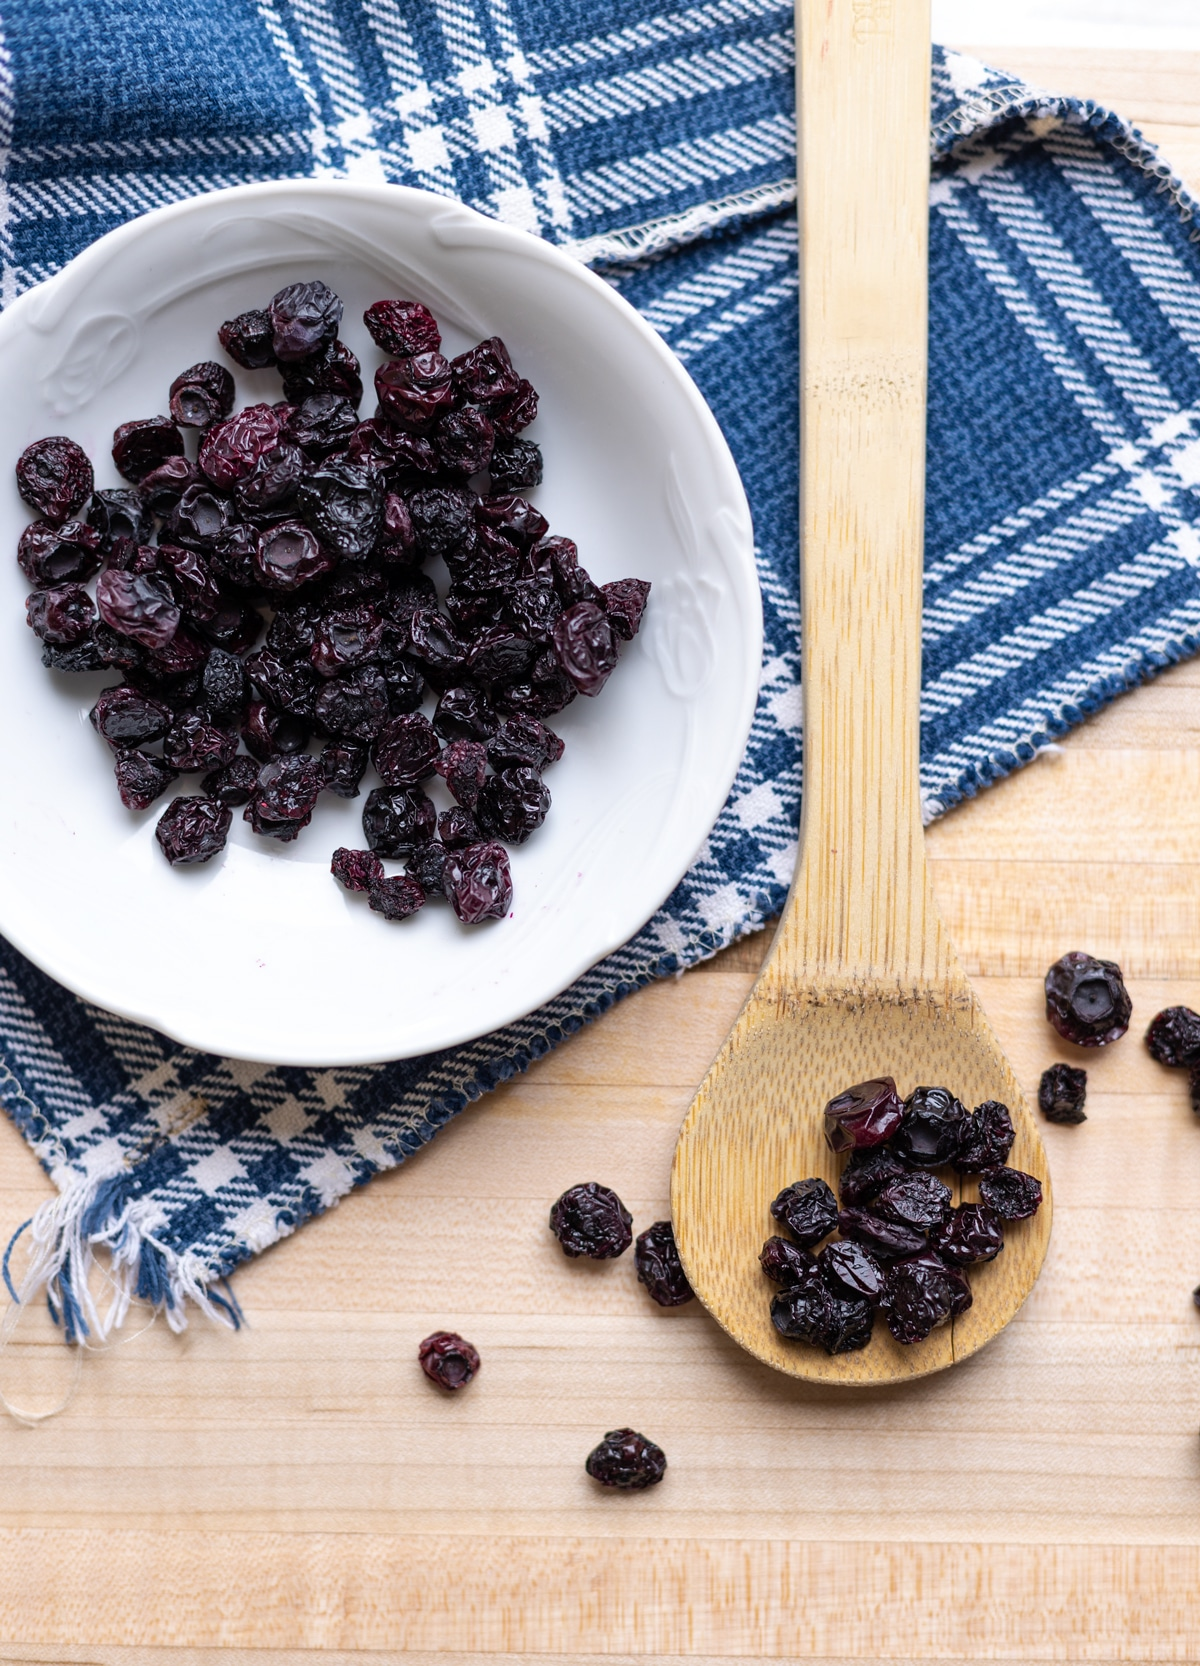 Dehydrated blueberries on a counter, Spoon full of dried berries.